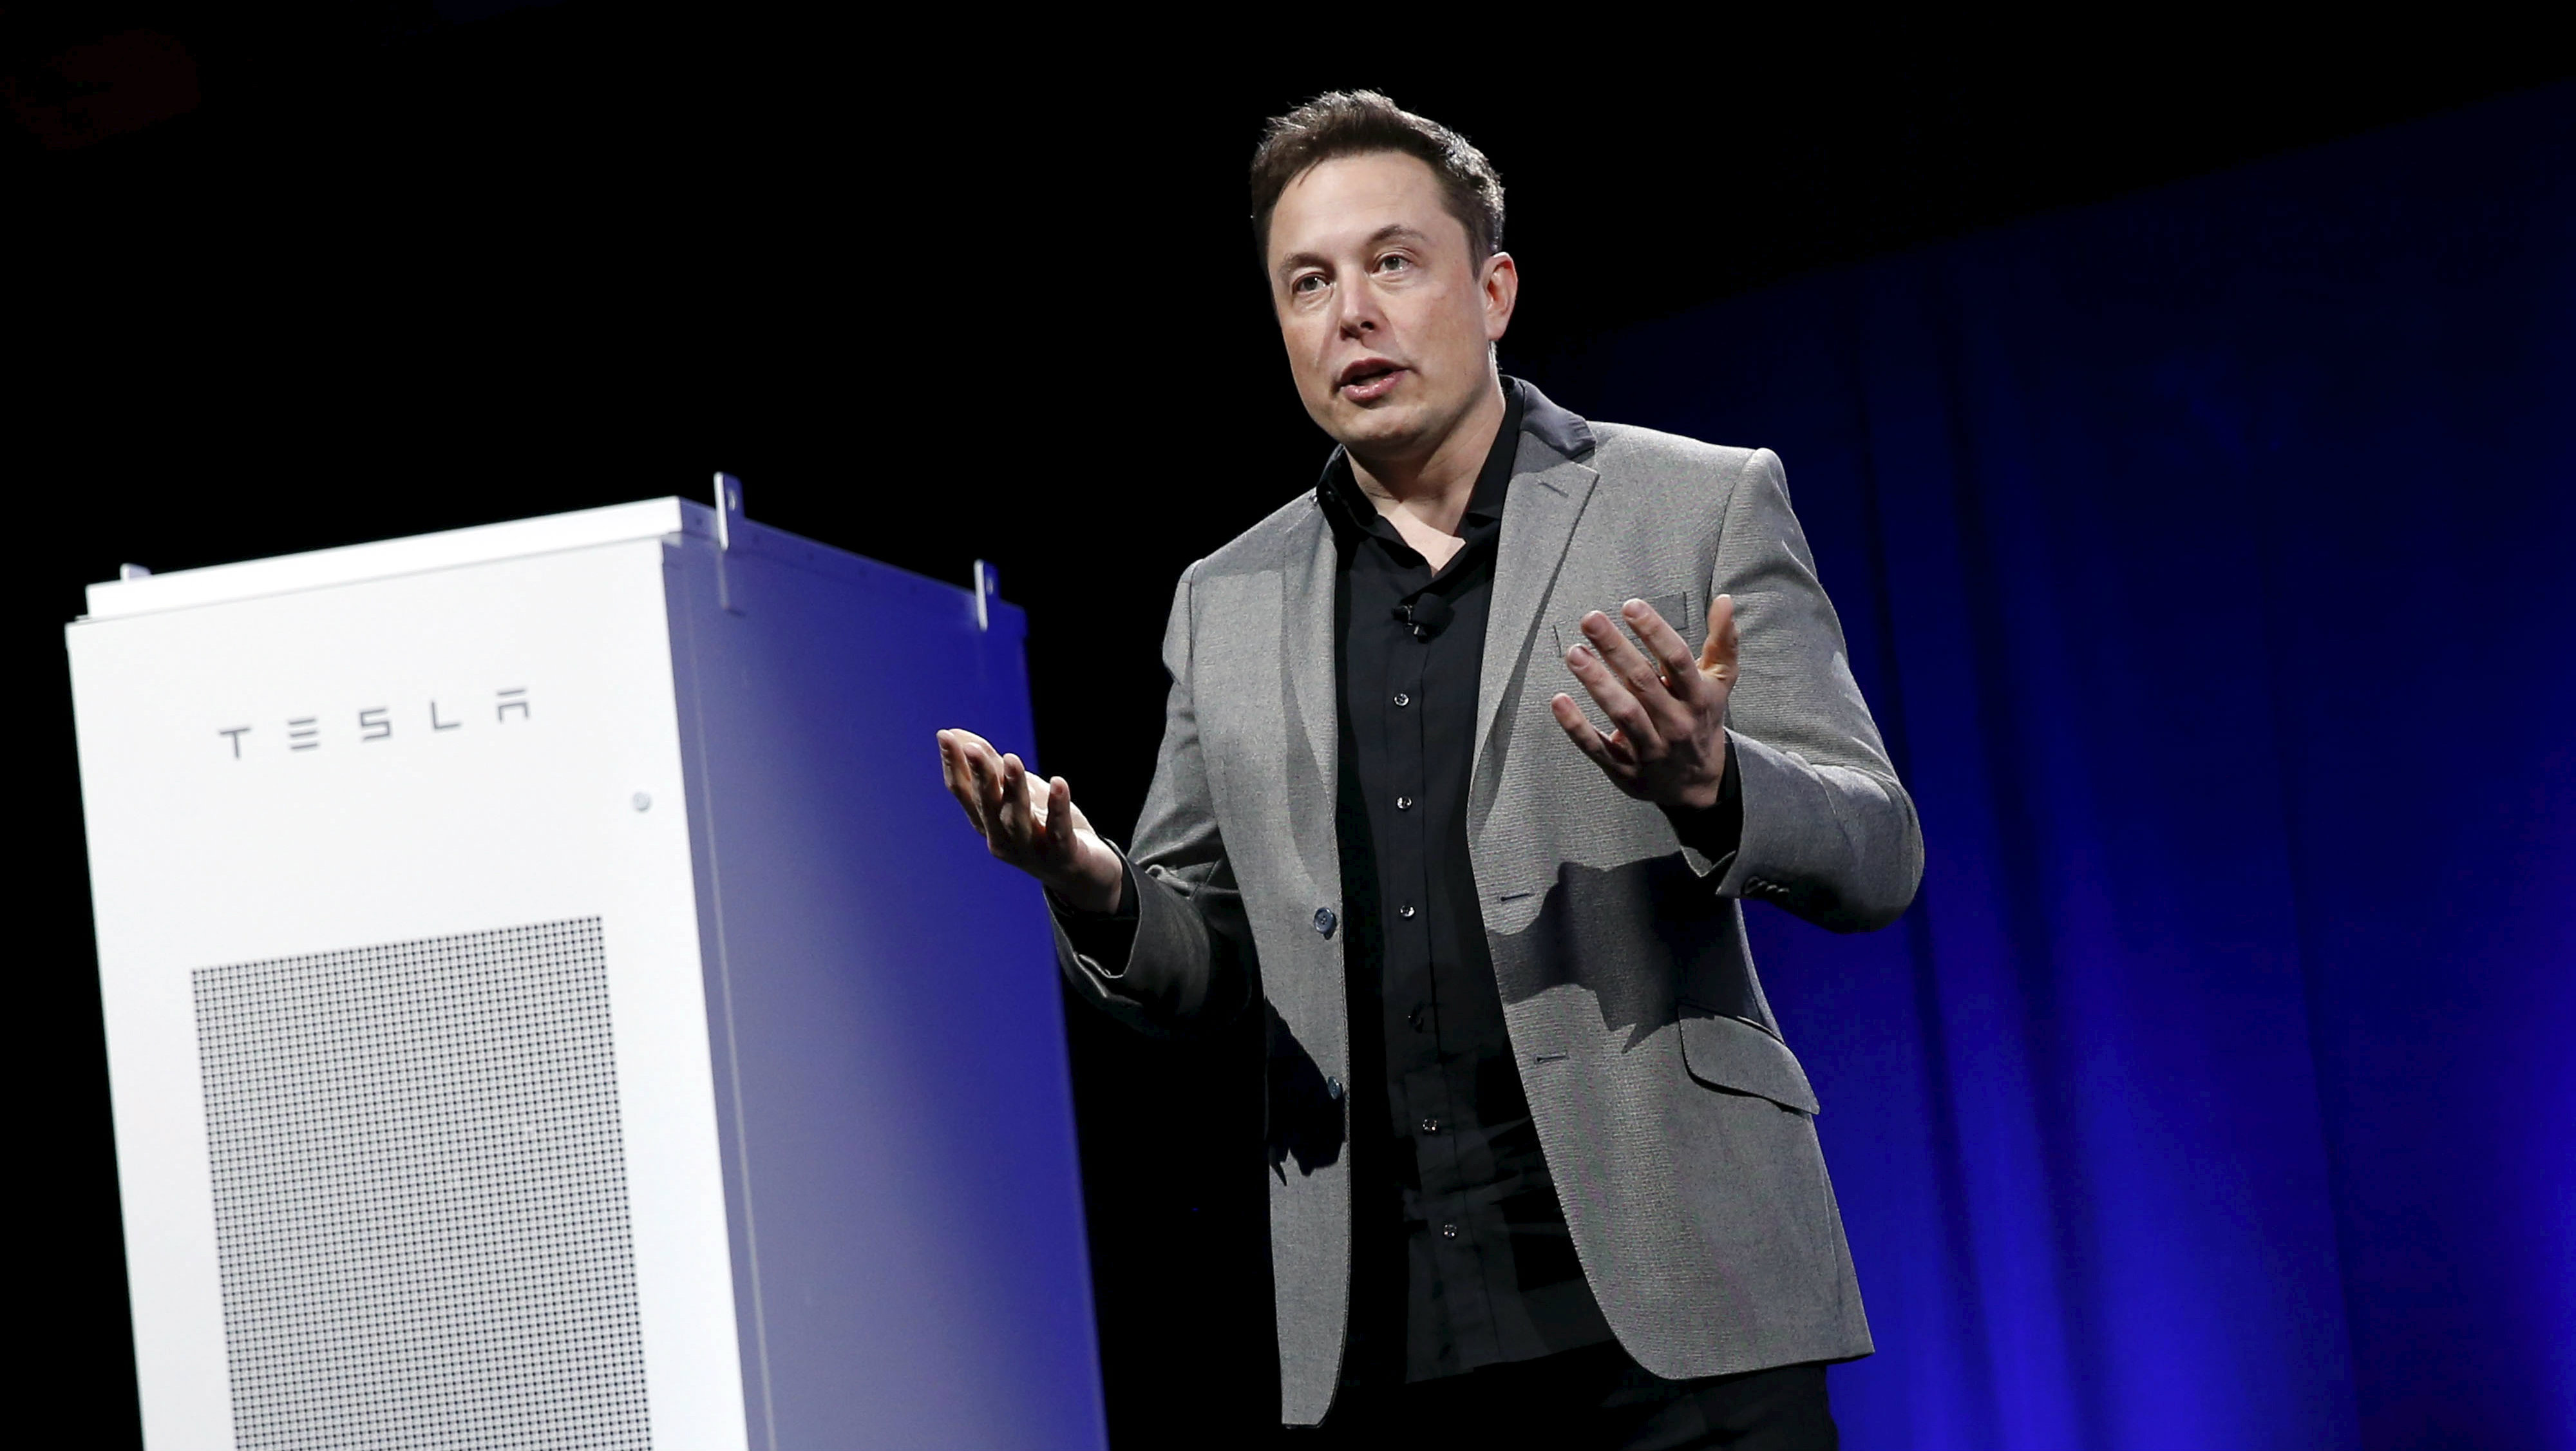 Tesla Motors CEO Elon Musk reveals a Tesla Energy battery for businesses and utility companies during an event in Hawthorne, California April 30, 2015.